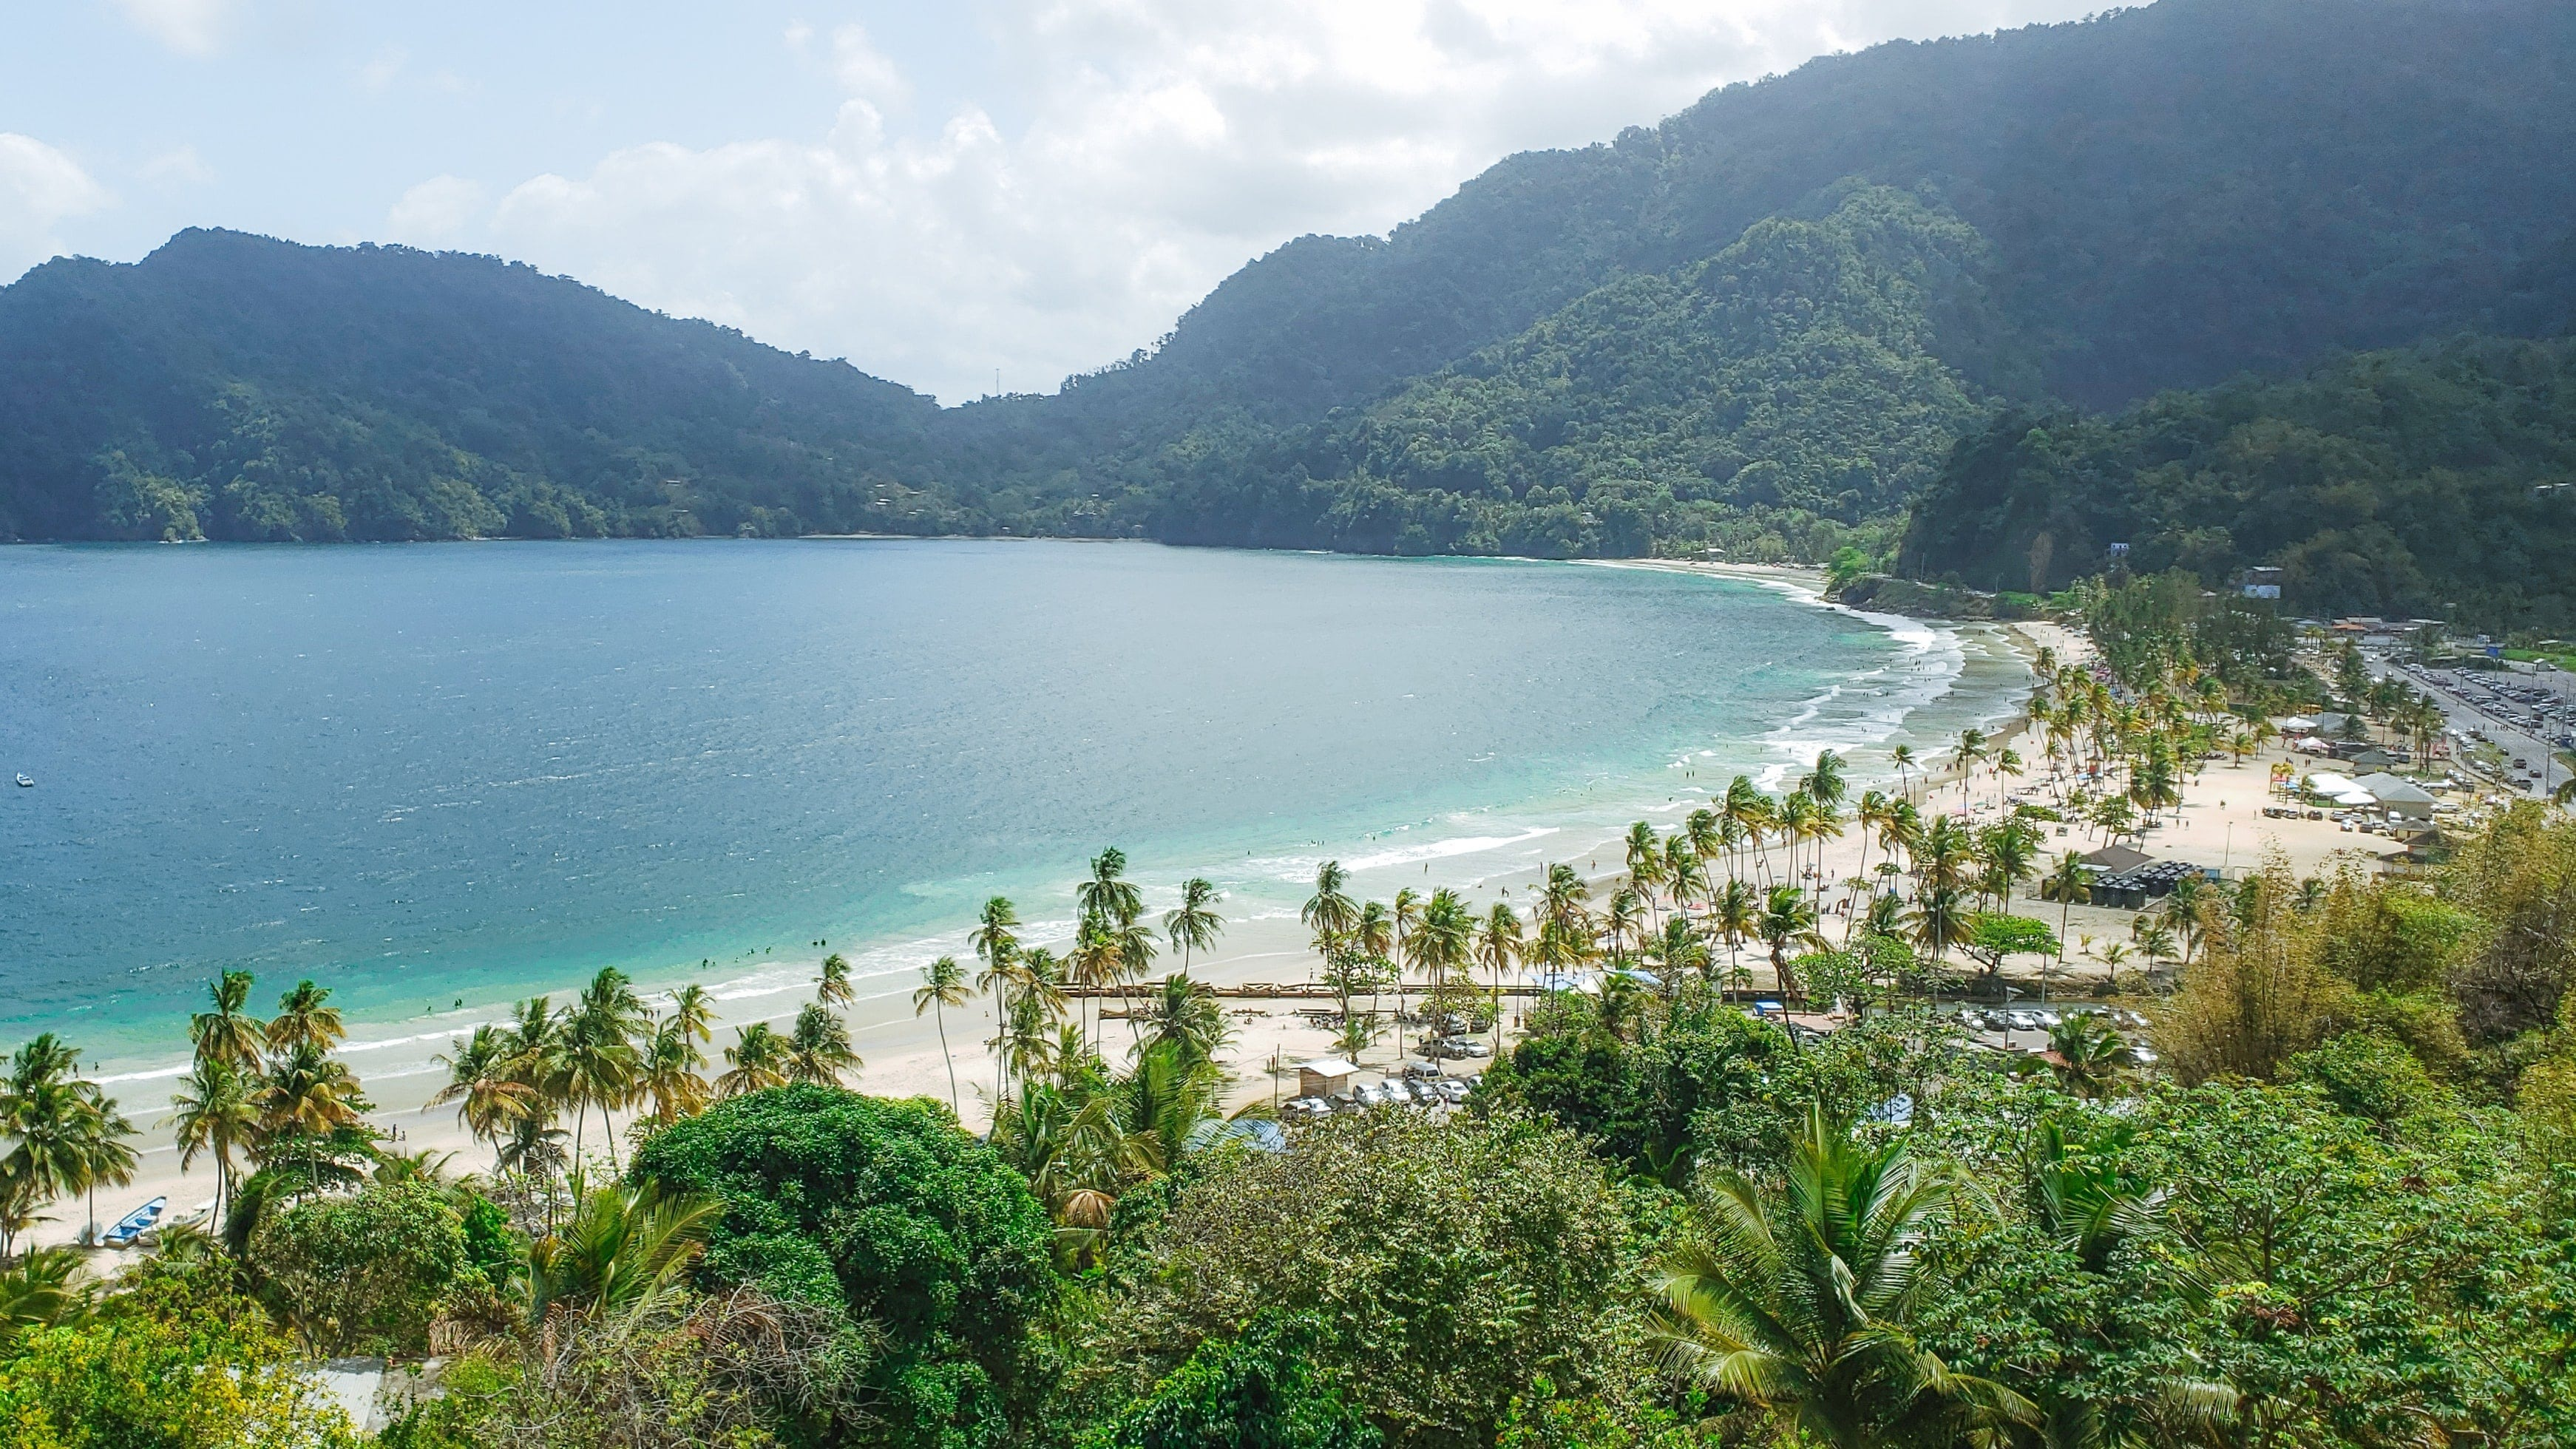 An insider's travel guide to Trinidad and Tobago